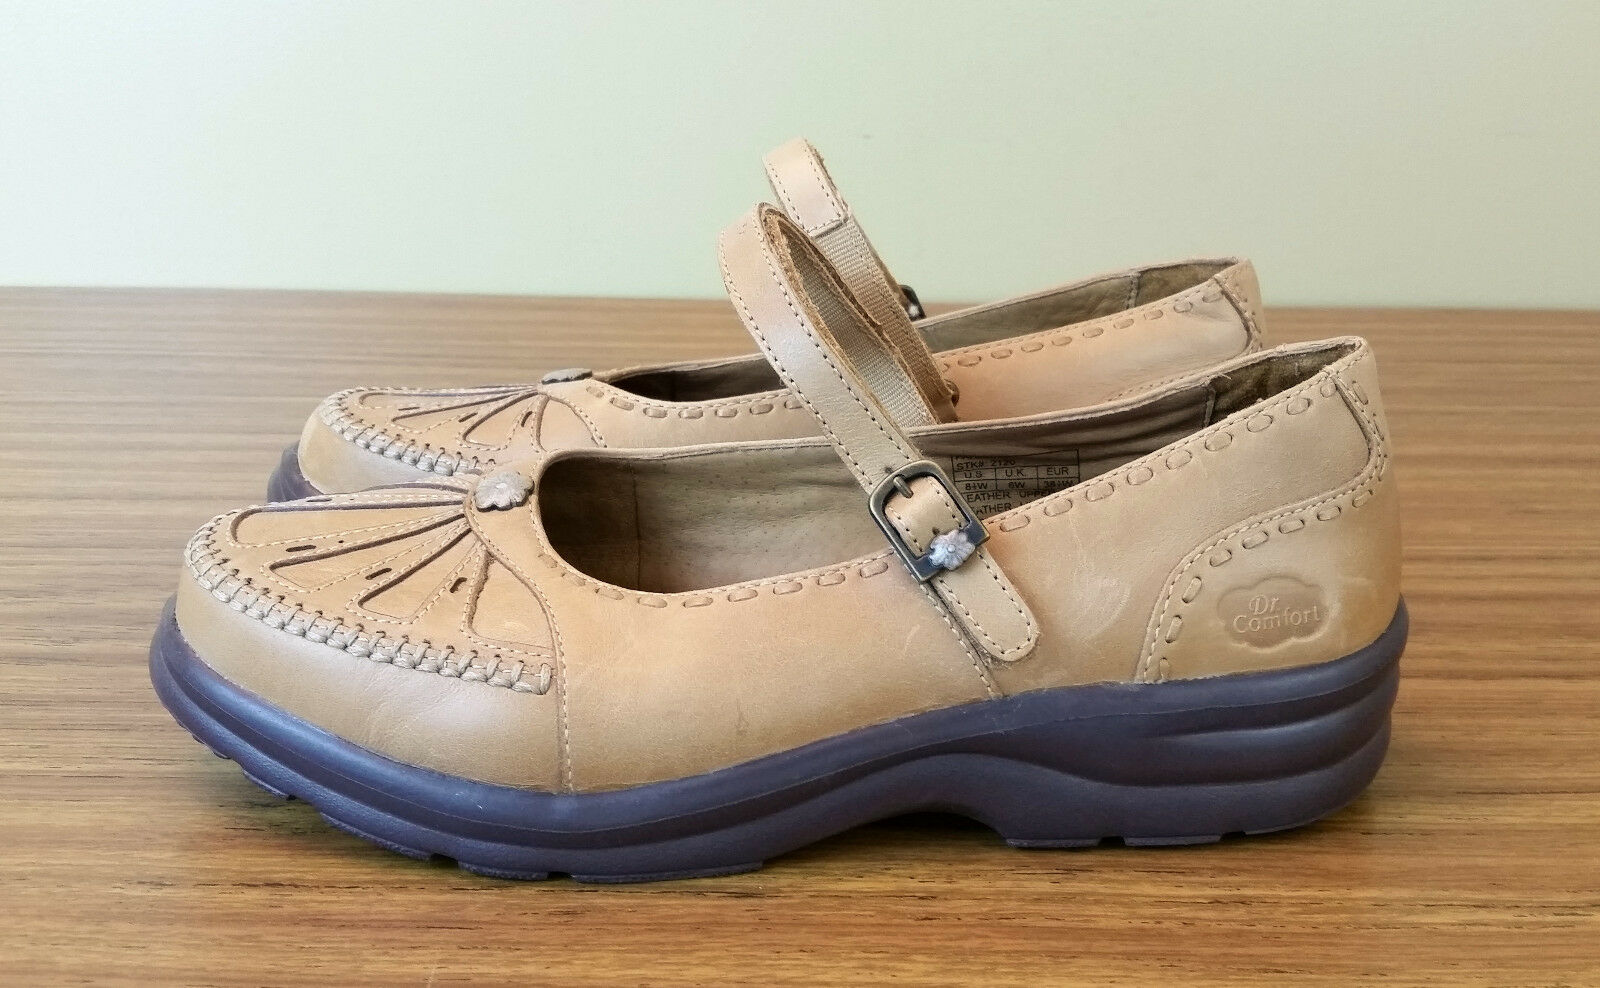 Dr Comfort Comfort Comfort Paradise Mary Janes 8.5 Wide Saddle Tan 4aaf35